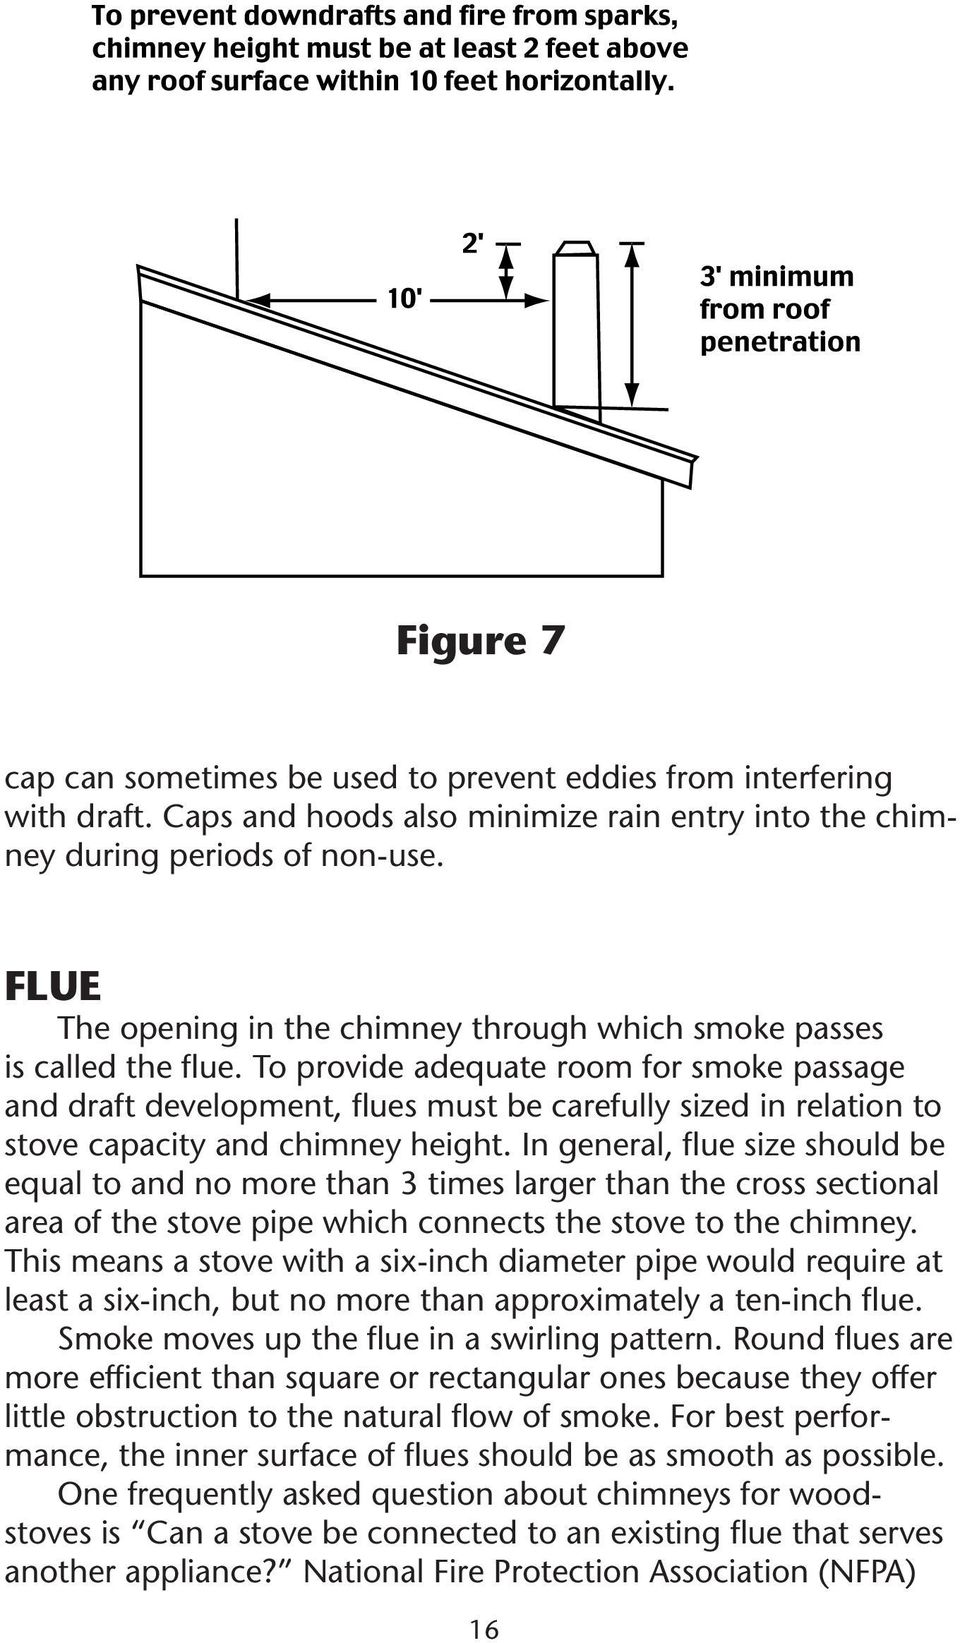 To provide adequate room for smoke passage and draft development, flues must be carefully sized in relation to stove capacity and chimney height.